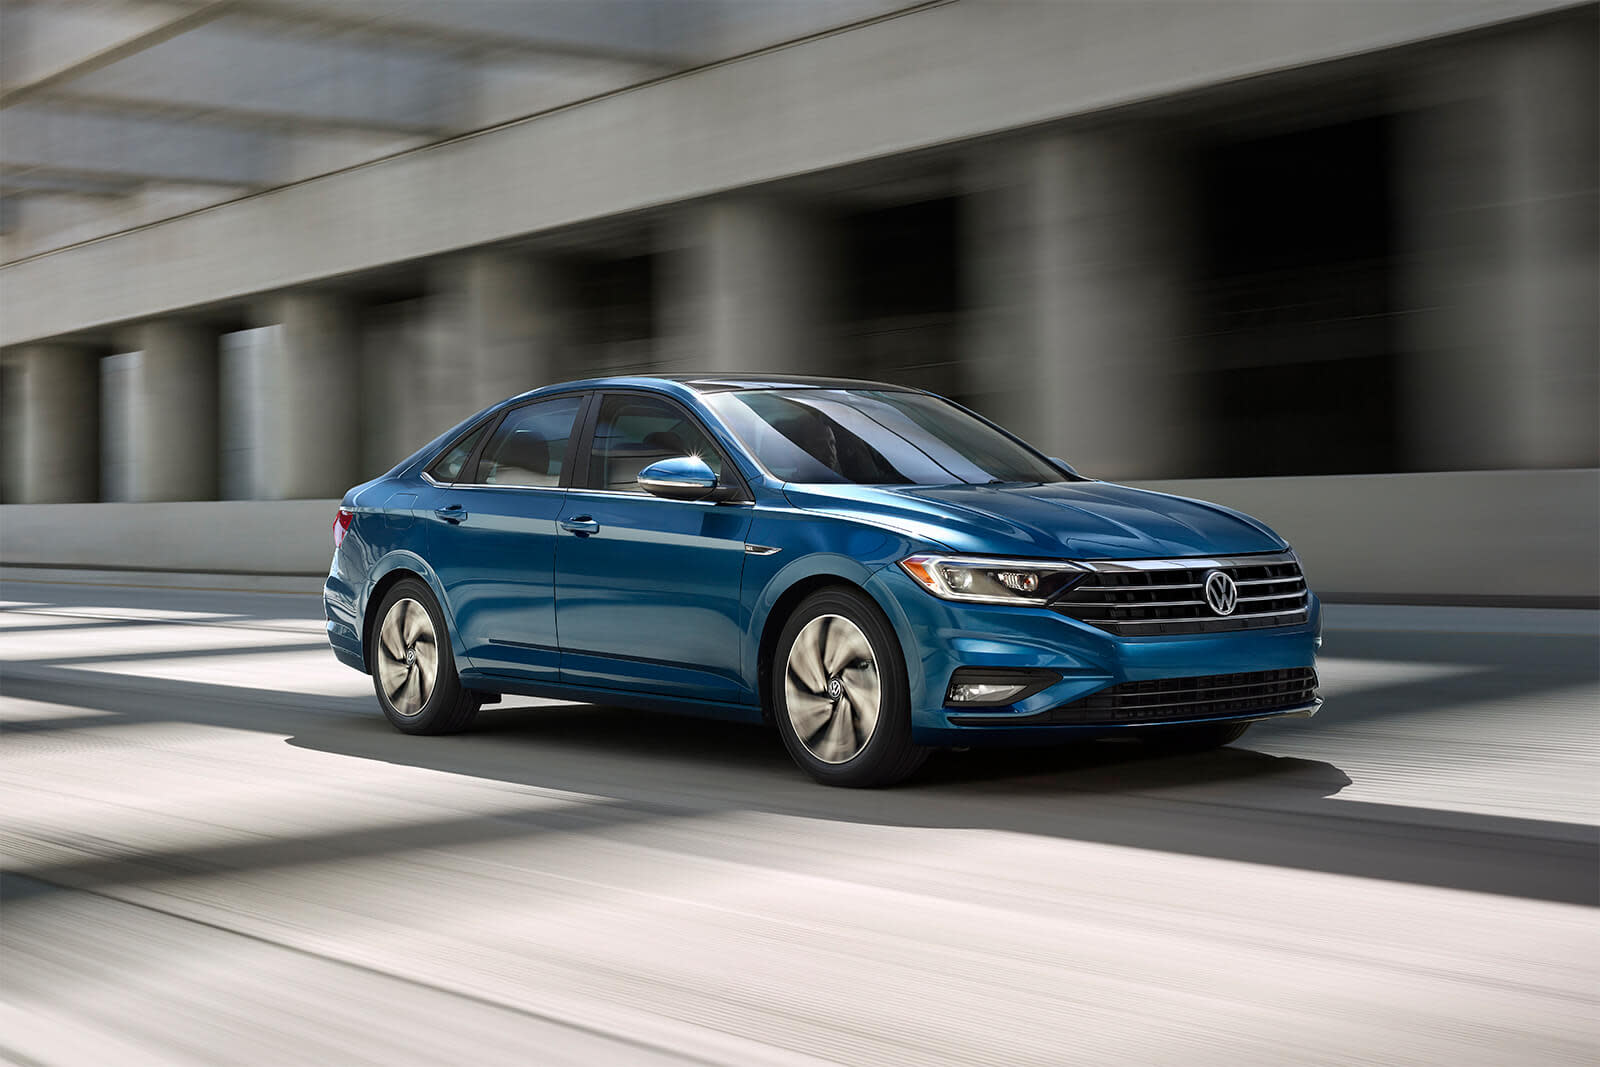 2019 Volkswagen Jetta Leasing near College Park, MD